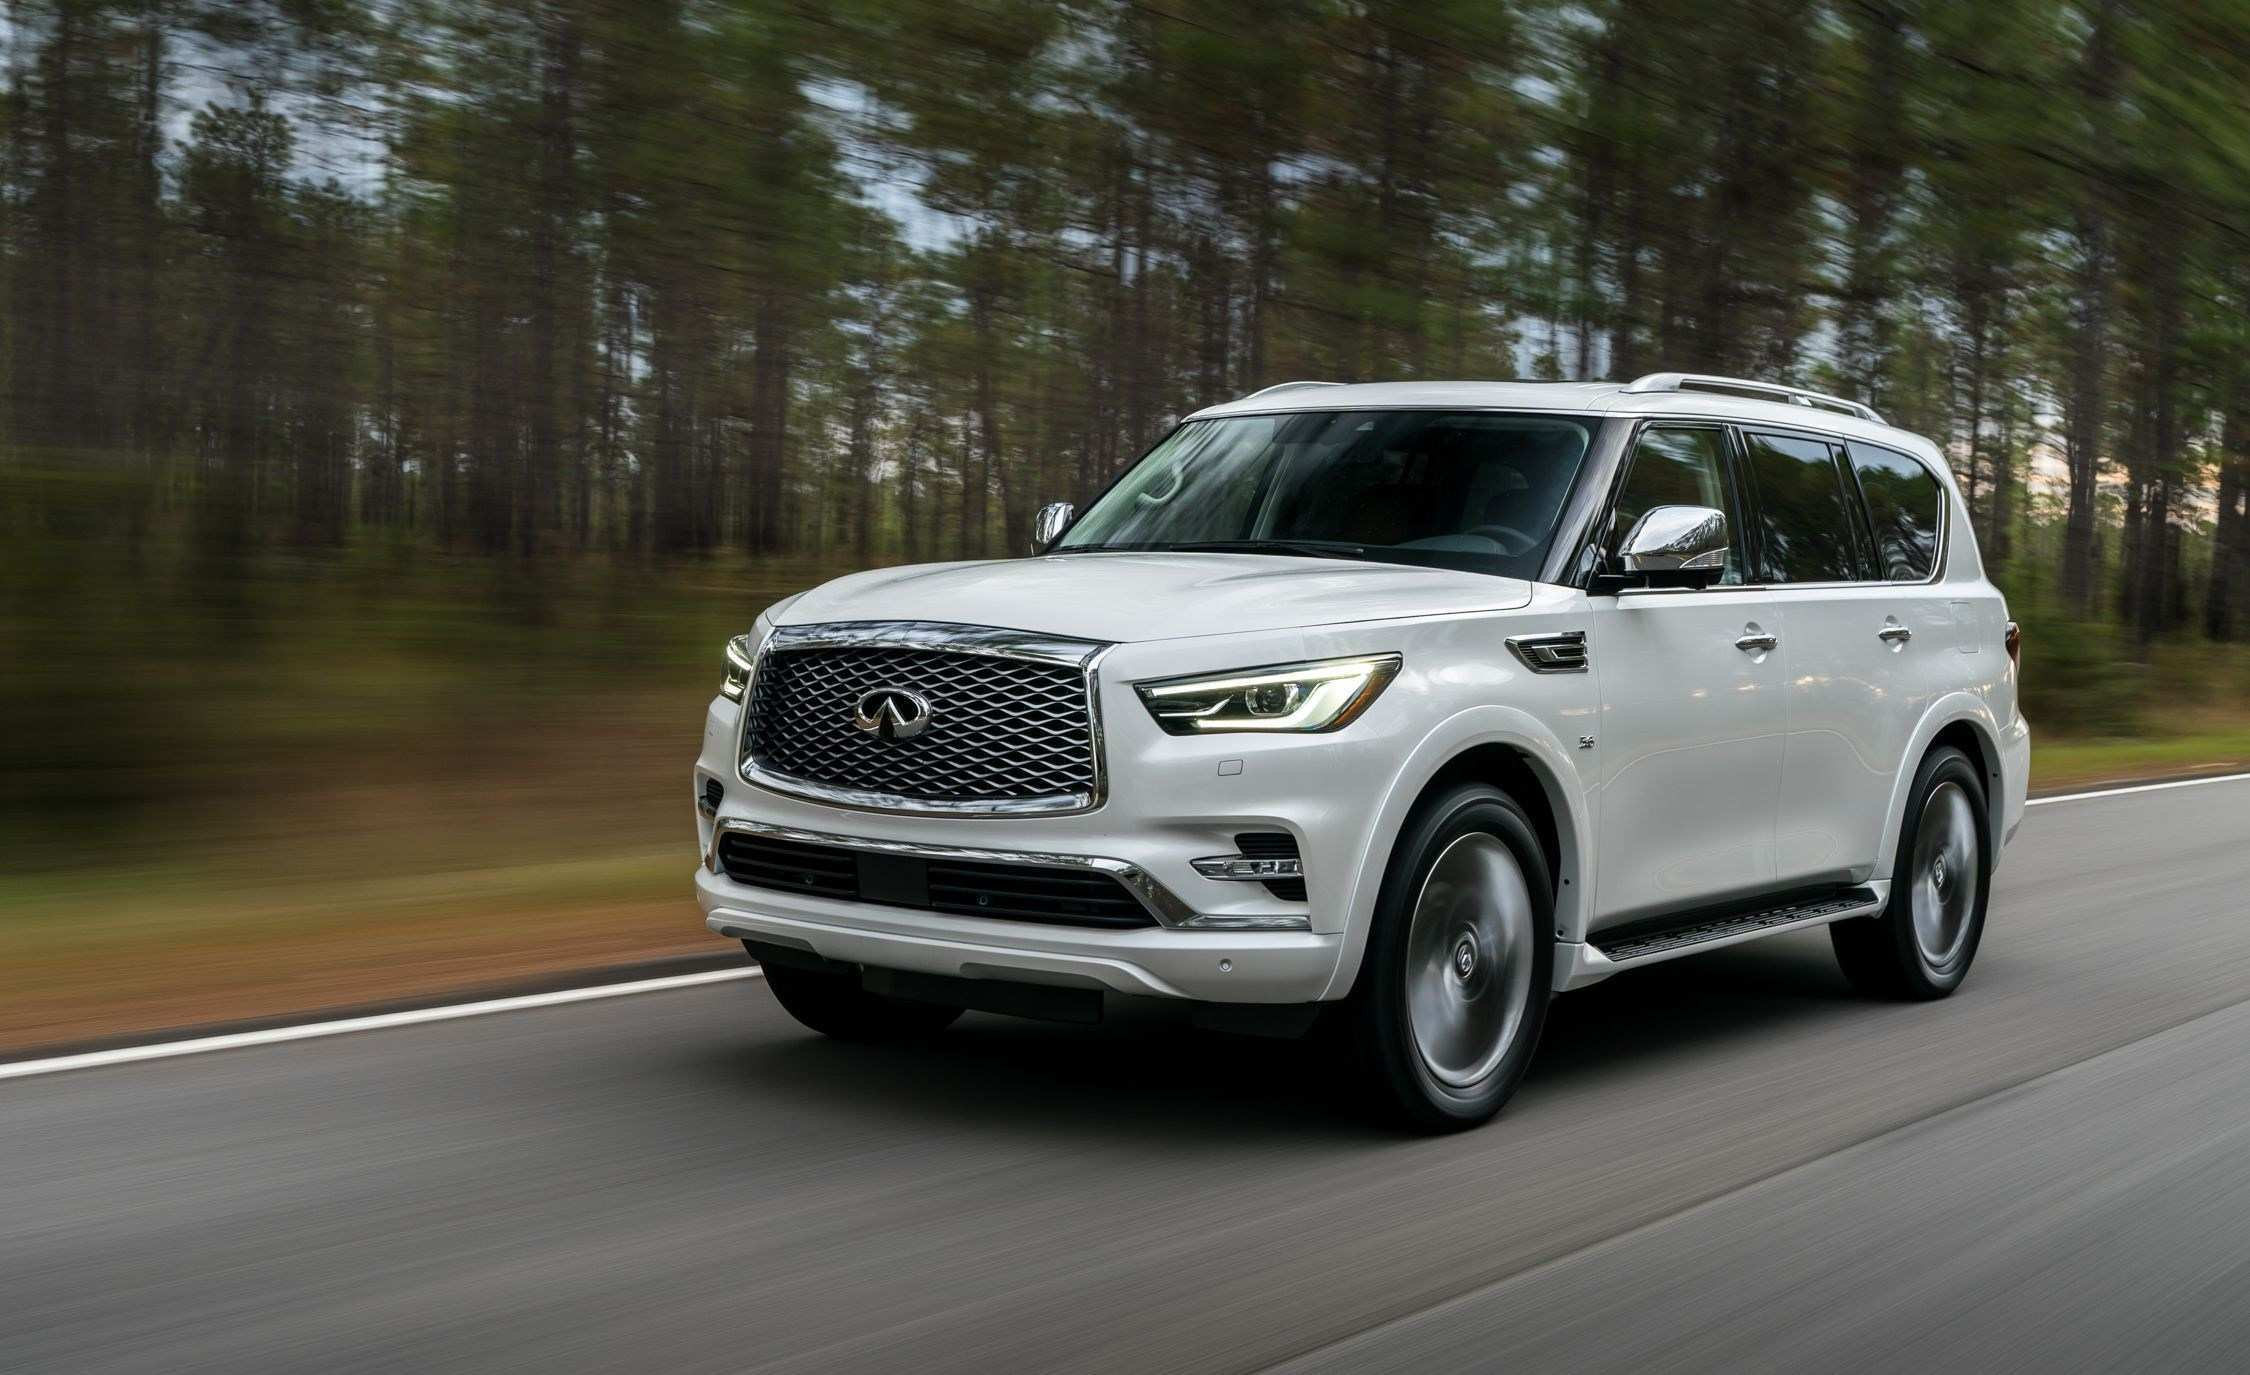 77 Best Review 2020 Infiniti Qx80 Msrp Specs with 2020 Infiniti Qx80 Msrp